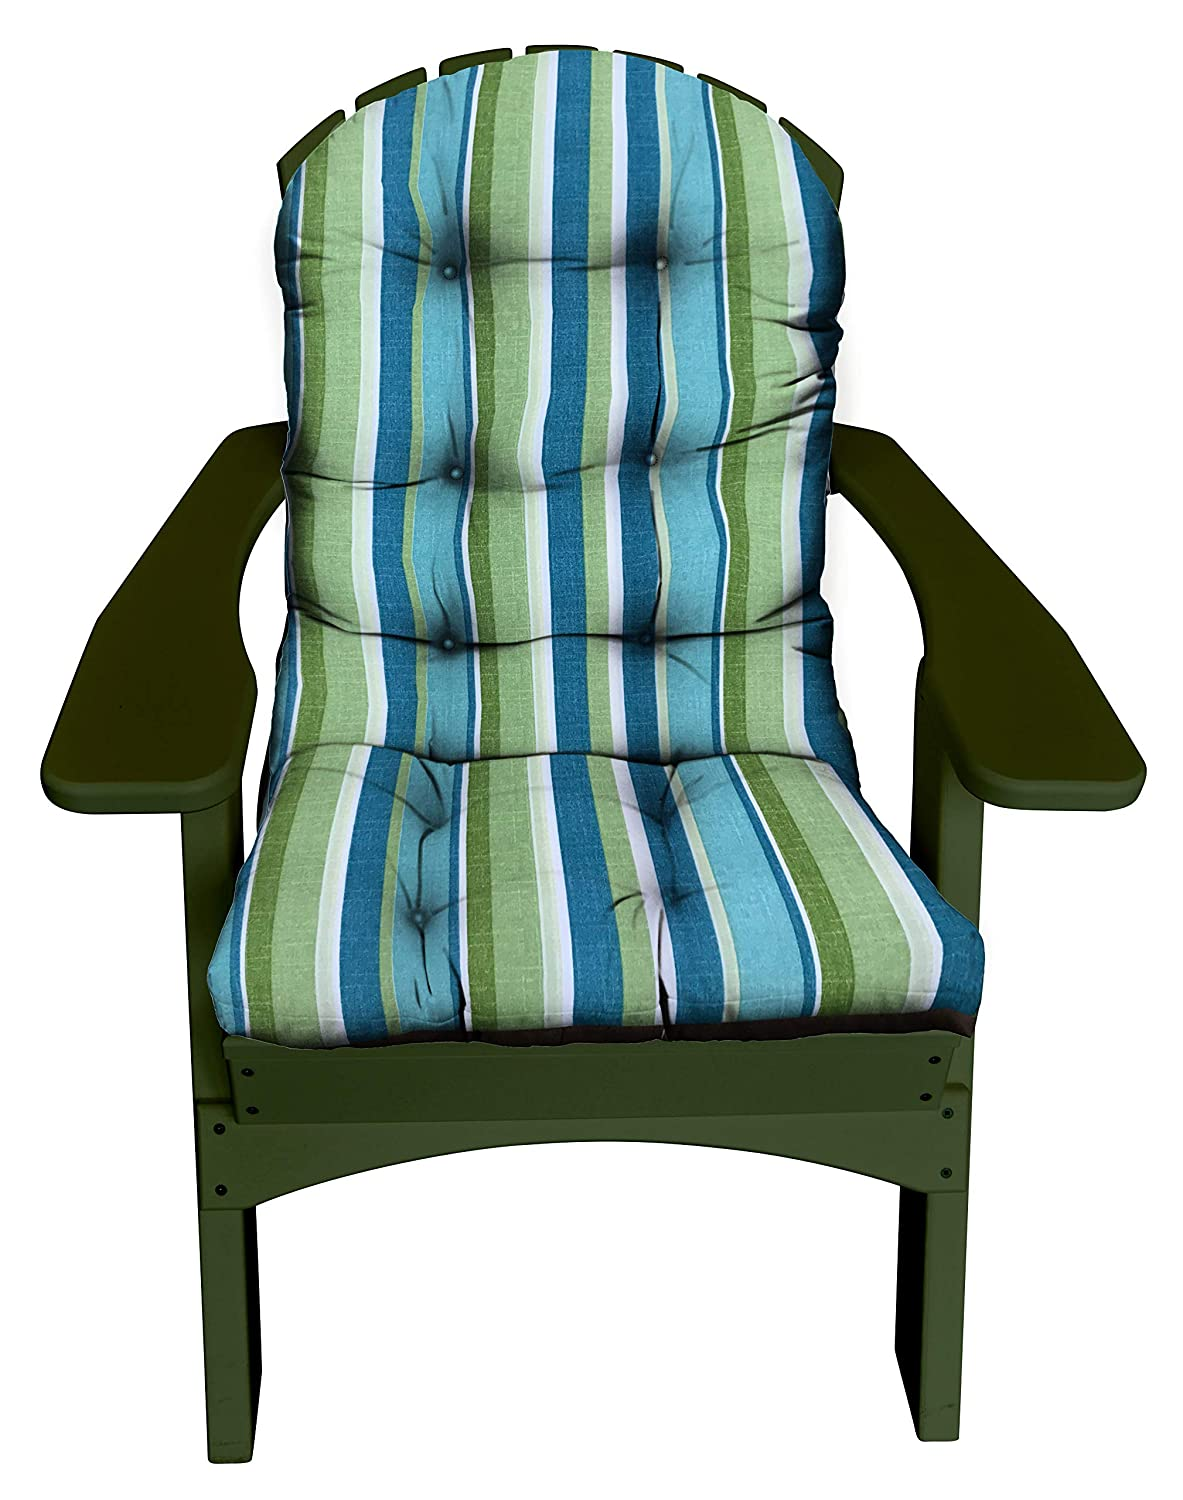 RSH D cor Indoor Outdoor Tufted Adirondack Chair Cushion Stain Weather Resistant Seat Pad Great for Porch, Patio, Deck and Home Decor Choose Color Aqua Blue Kiwi Green Cream Stripe